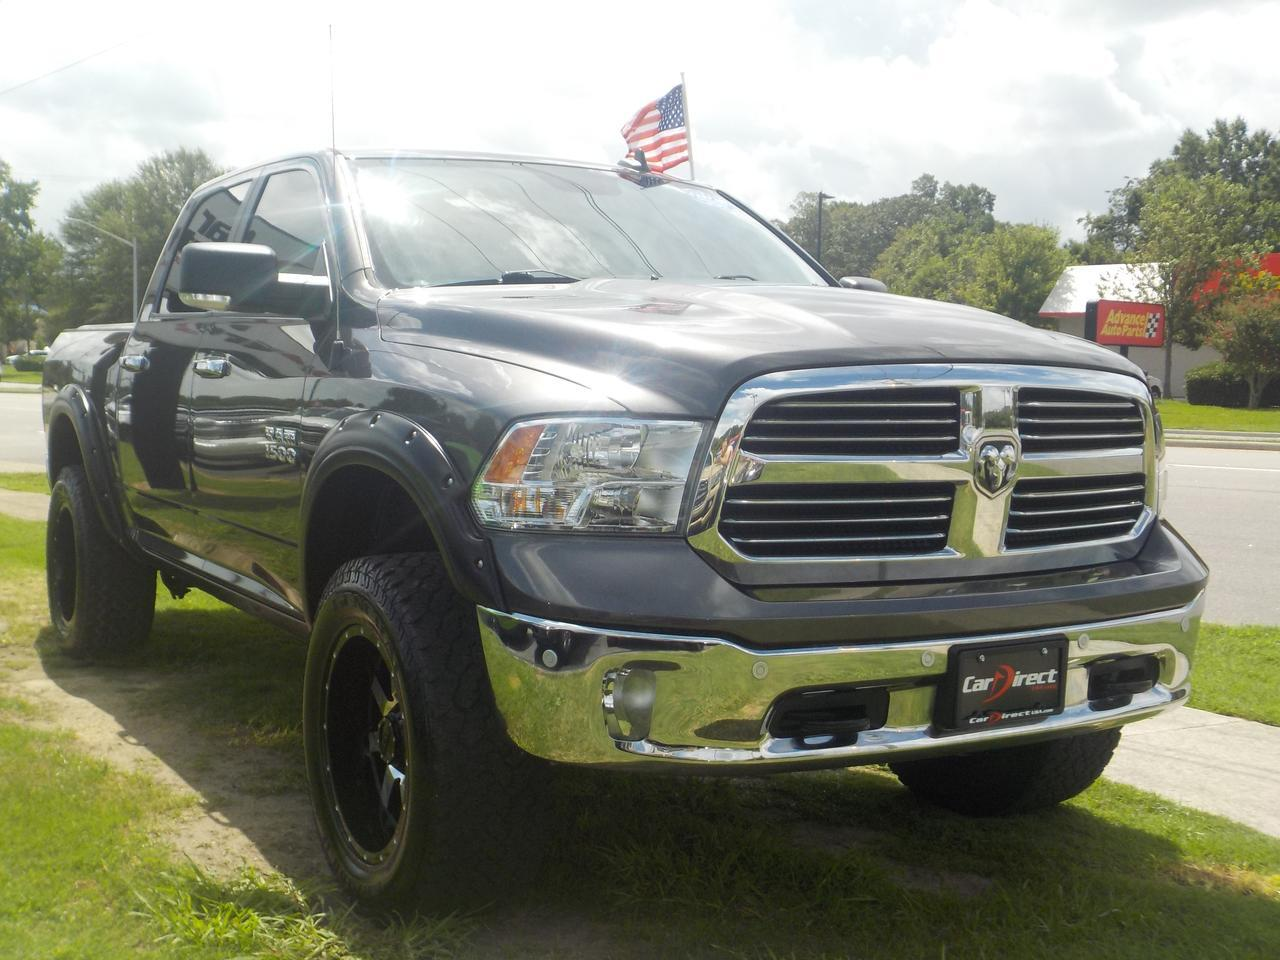 2016 RAM 1500 BIGHORN CREW CAB 4X4, NAV, HEATED SEATS, BLUETOOTH, TOW PKG, REMOTE START, CLEAN CARFAX, LOW MILES! Virginia Beach VA